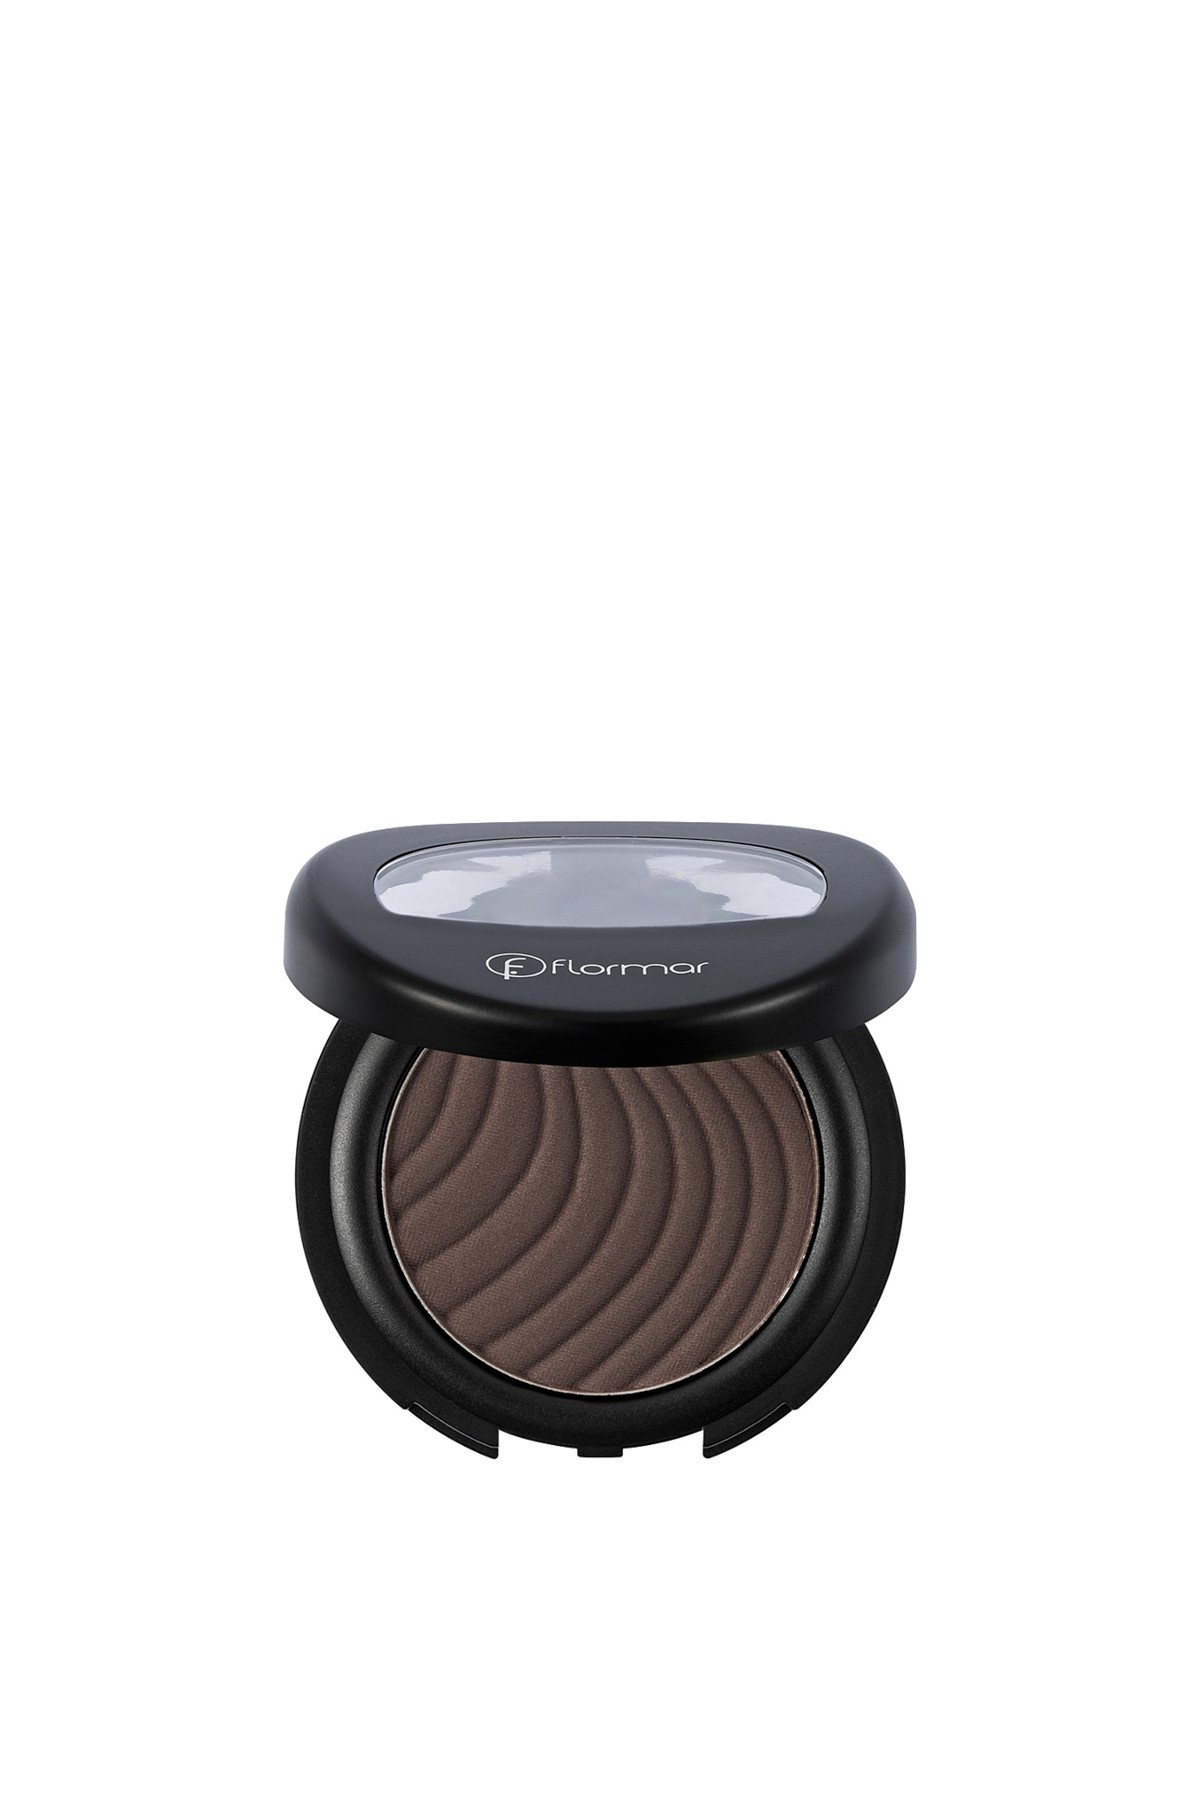 Flormar Kaş Farı – Eyebrow Shadow Dark Ash Brown 8690604242696